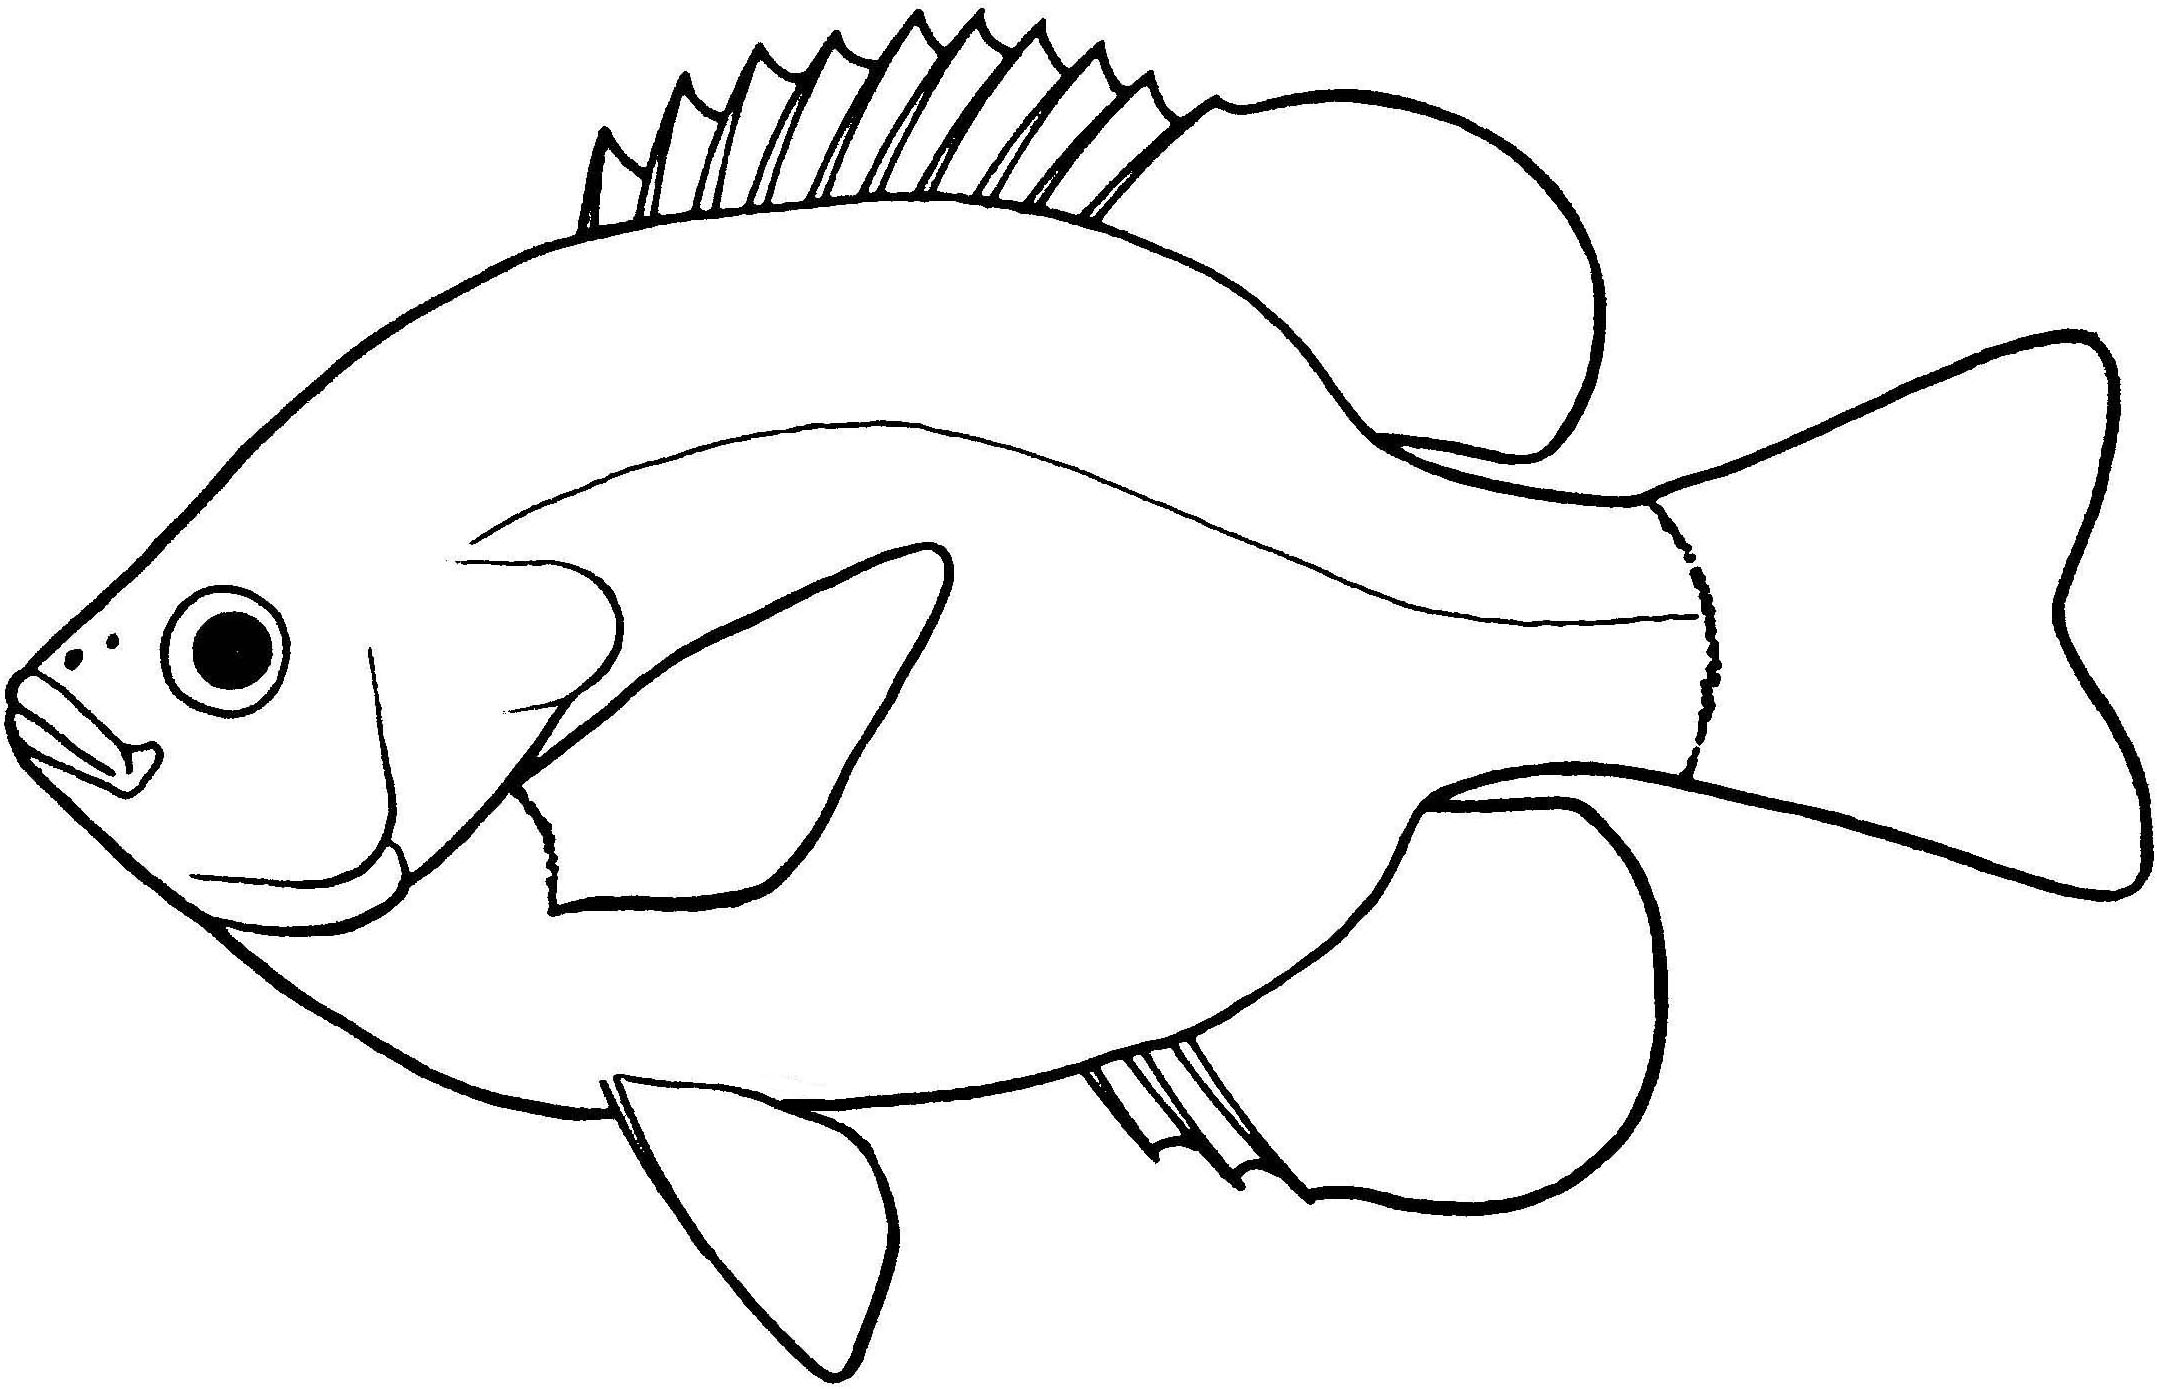 2157x1389 alert famous fish pictures drawings cool easy awesome design ideas